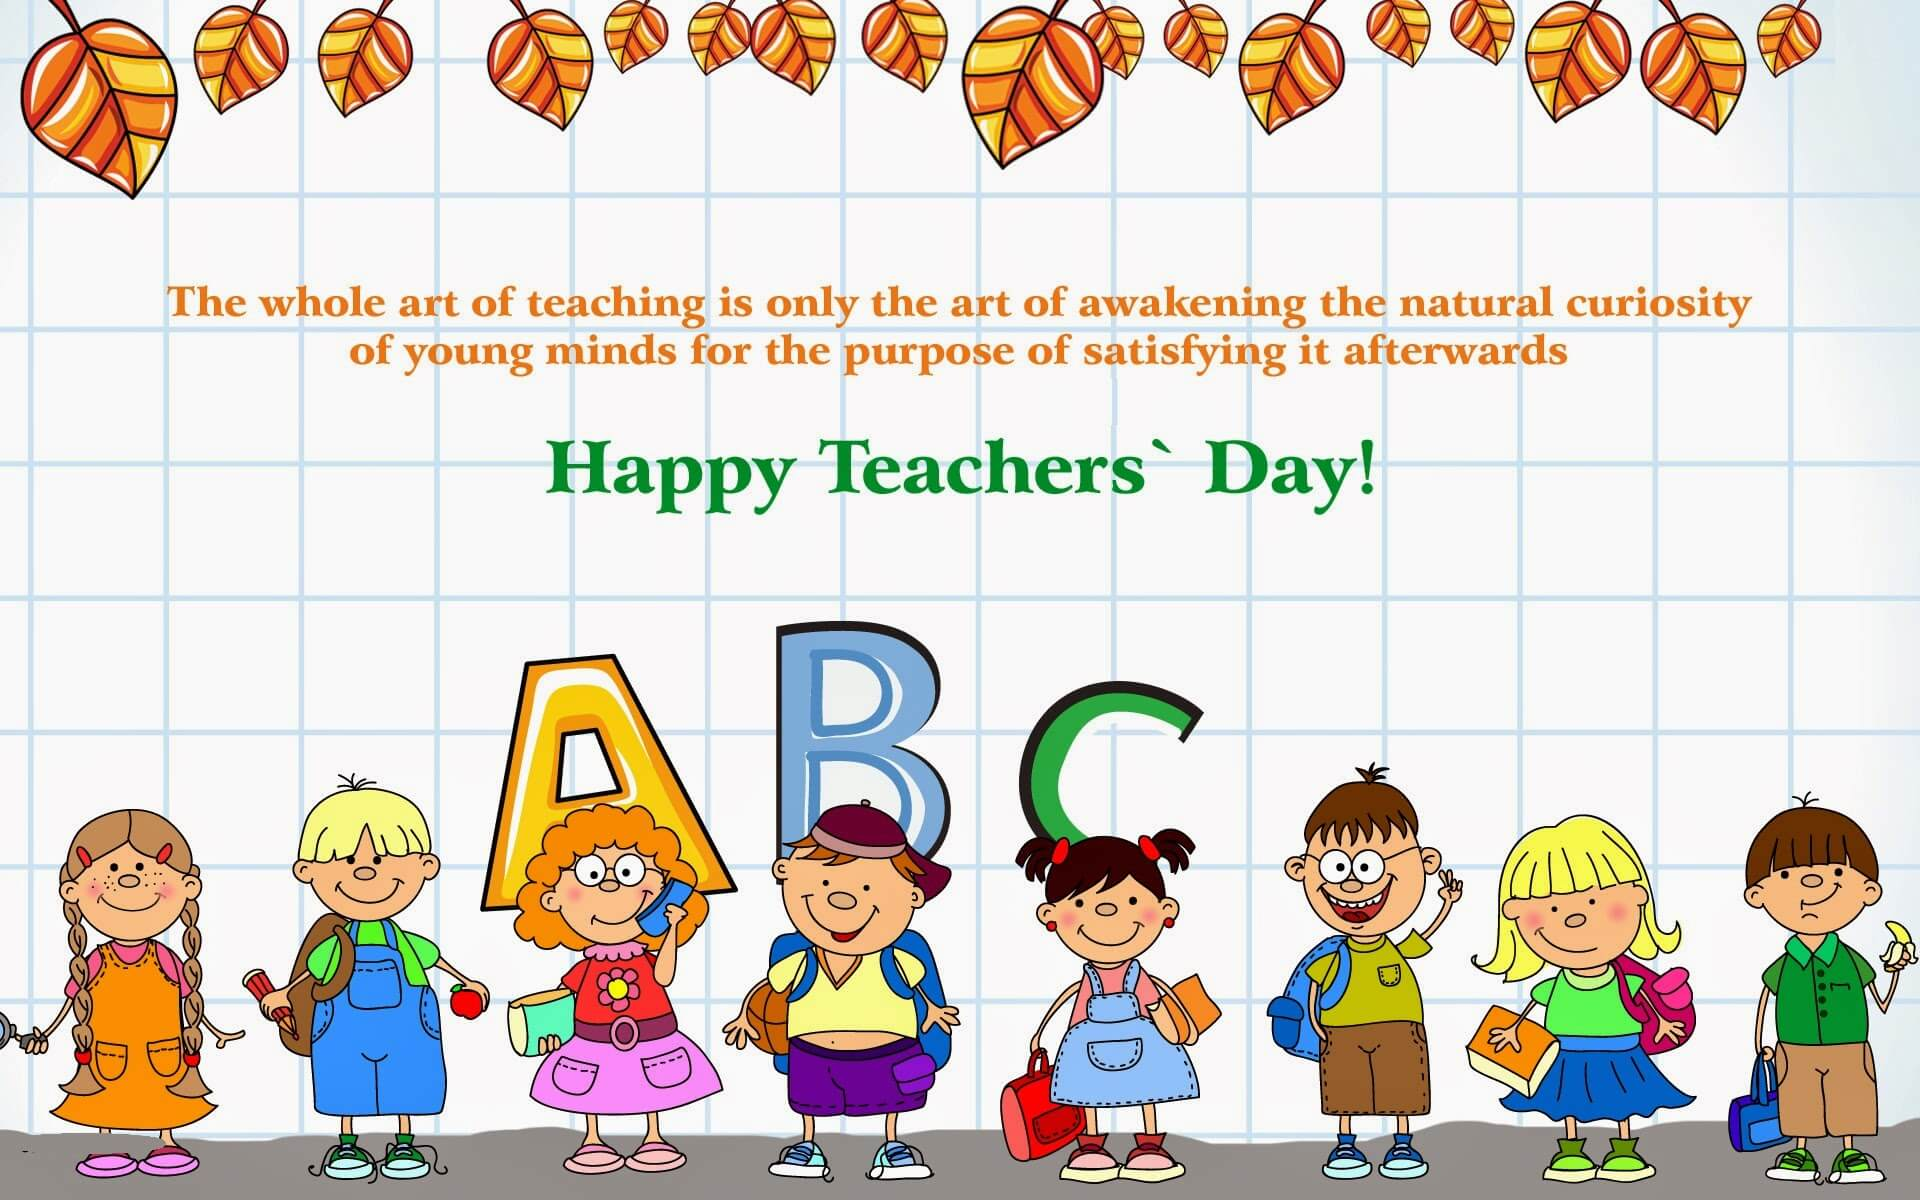 Teachers day wallpapers free download happy teachers day quotes cartoon kids wallpaper kristyandbryce Choice Image